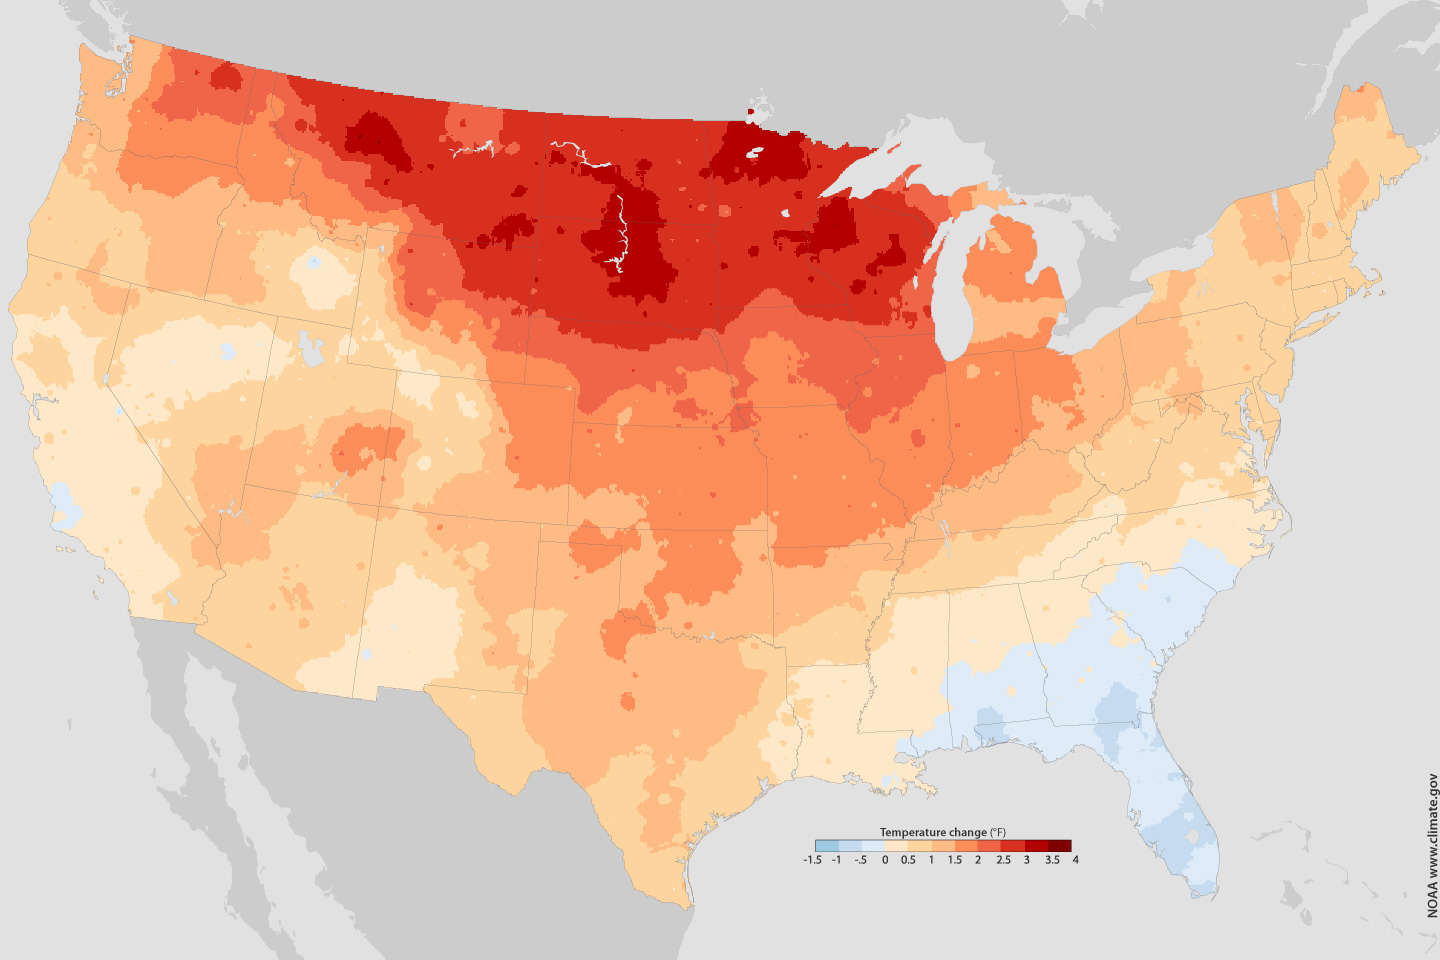 US Climate The New Normal  Image Of The Day - Temperature map united states january